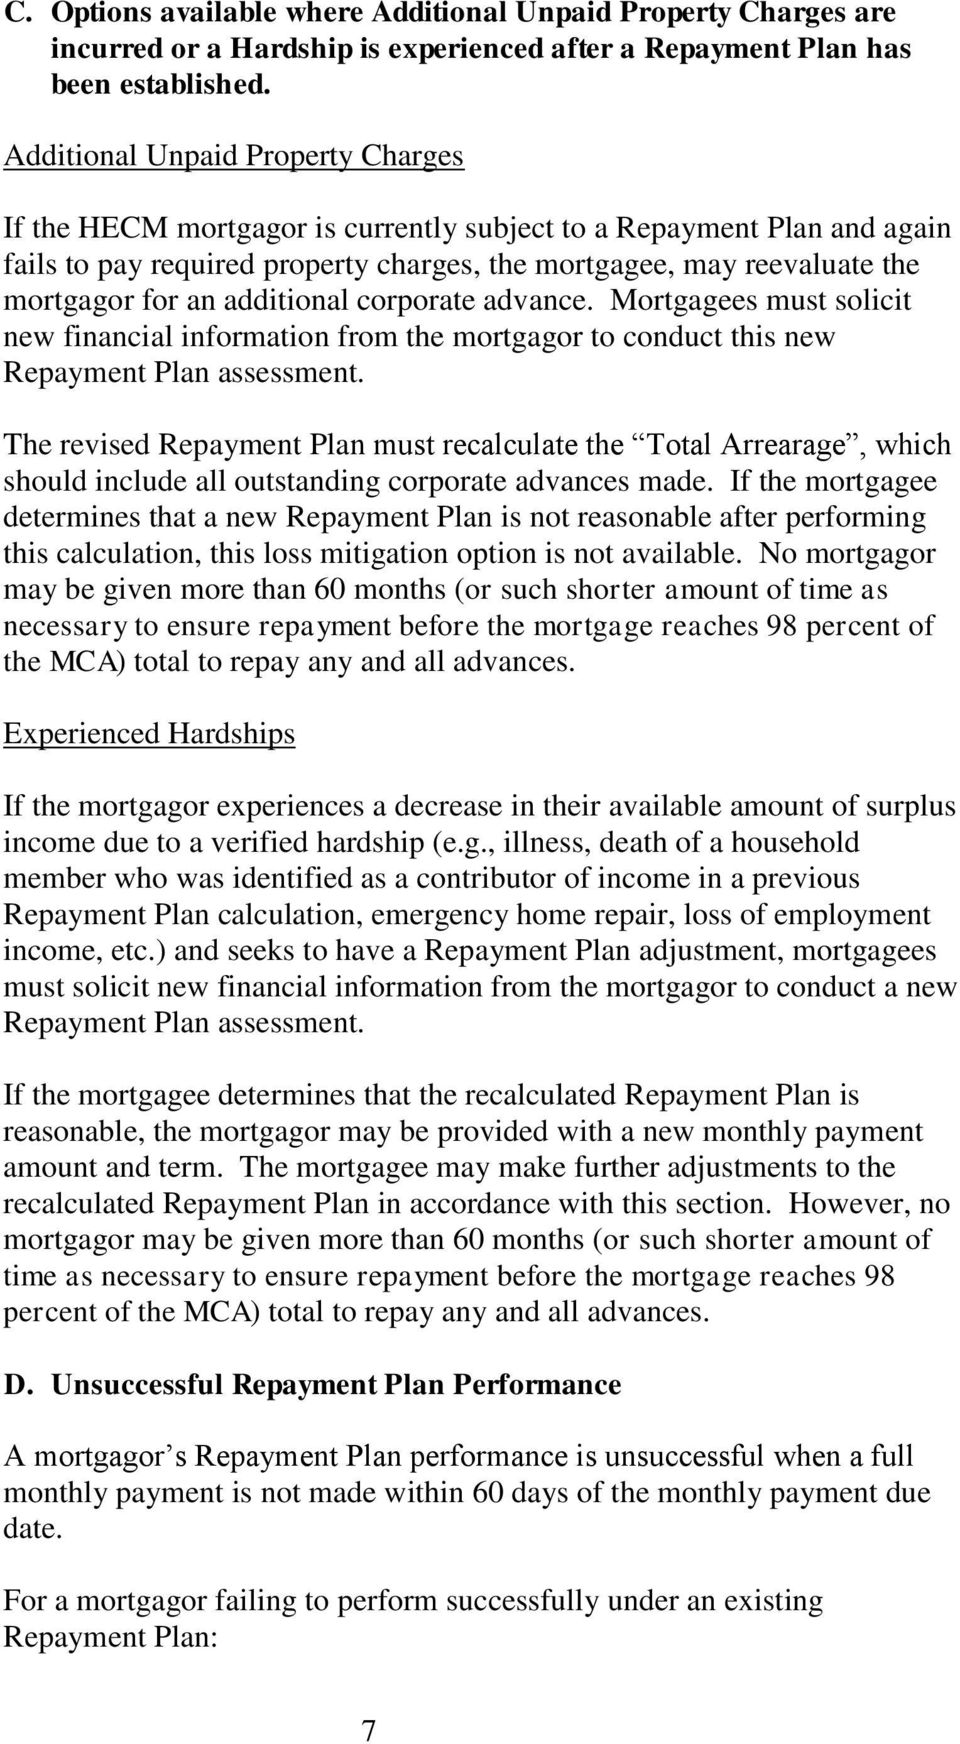 additional corporate advance. Mortgagees must solicit new financial information from the mortgagor to conduct this new Repayment Plan assessment.